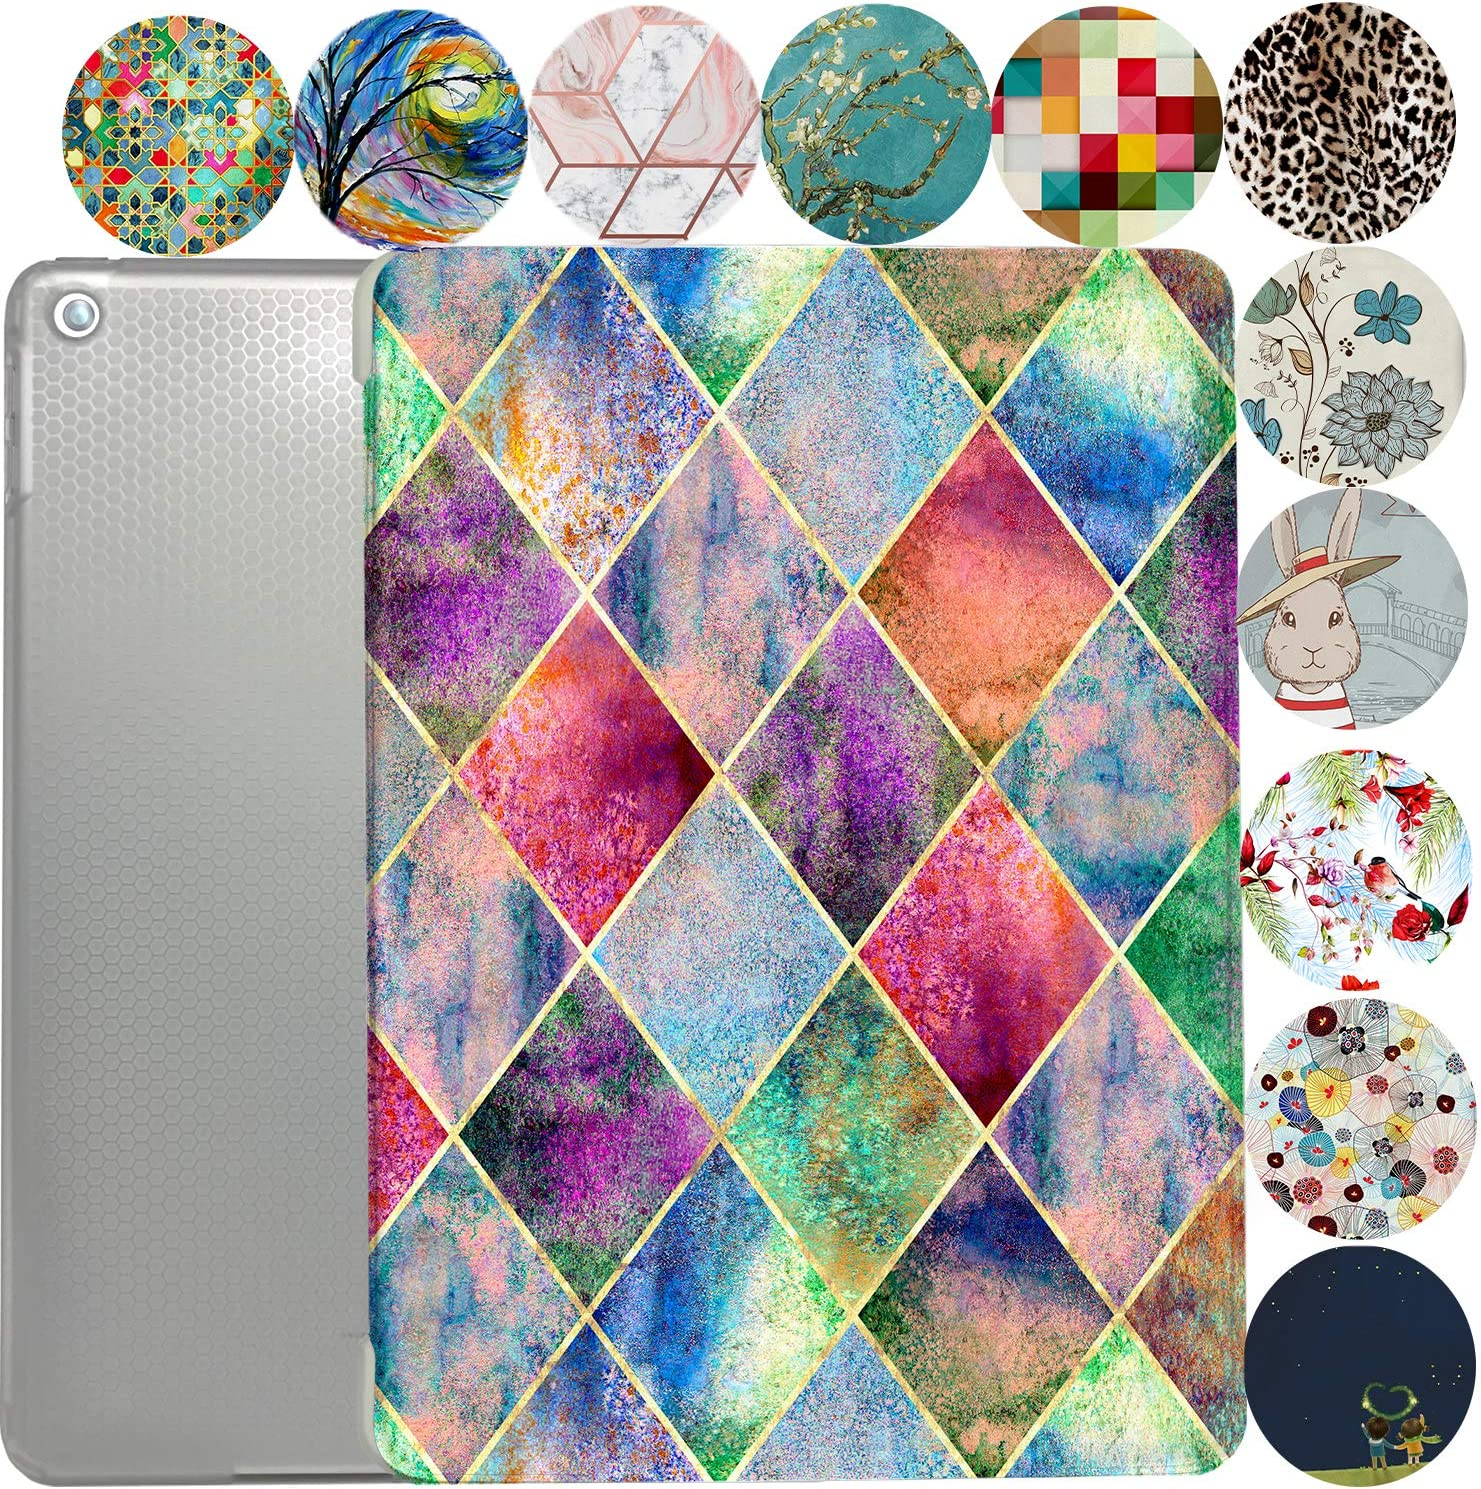 """iPad 9.7 Case 2013 iPad Air 1st Generation Slim Smart Protective Cover with Soft TPU Honeycomb Clear Back & Viewing/Typing Stand for iPad 9.7"""" Air 1 Gen Auto Sleep/Wake Printed- Diamond Grid"""